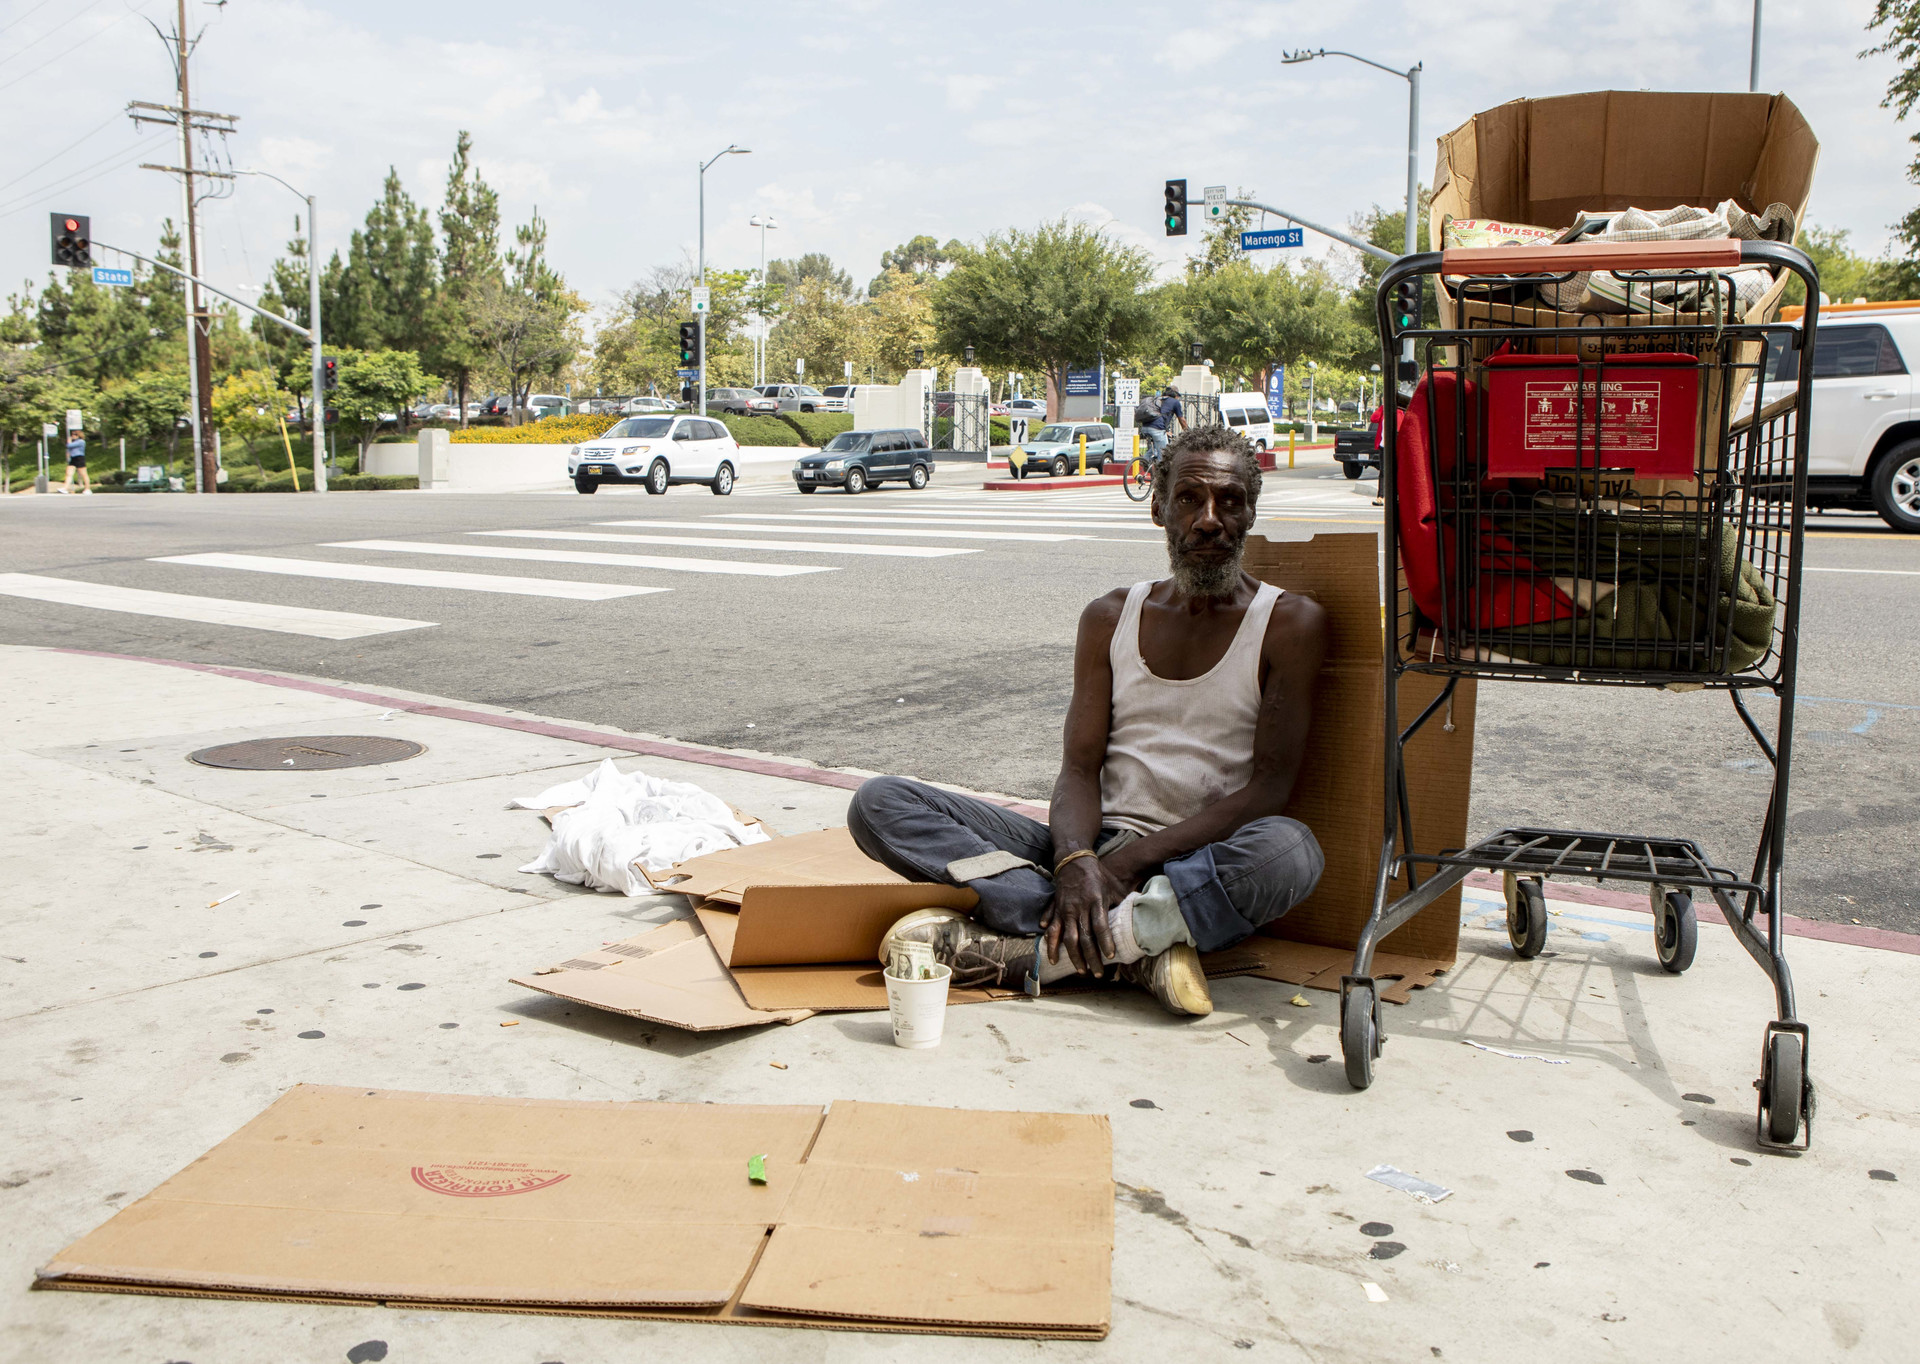 Will, who provided his first name only, sits on the sidewalk across the street from LAC+USC Medical Center to panhandle for money until he has enough to go to McDonalds down the block. Will has been homeless since he arrived in Los Angeles from Chicago in 1982.